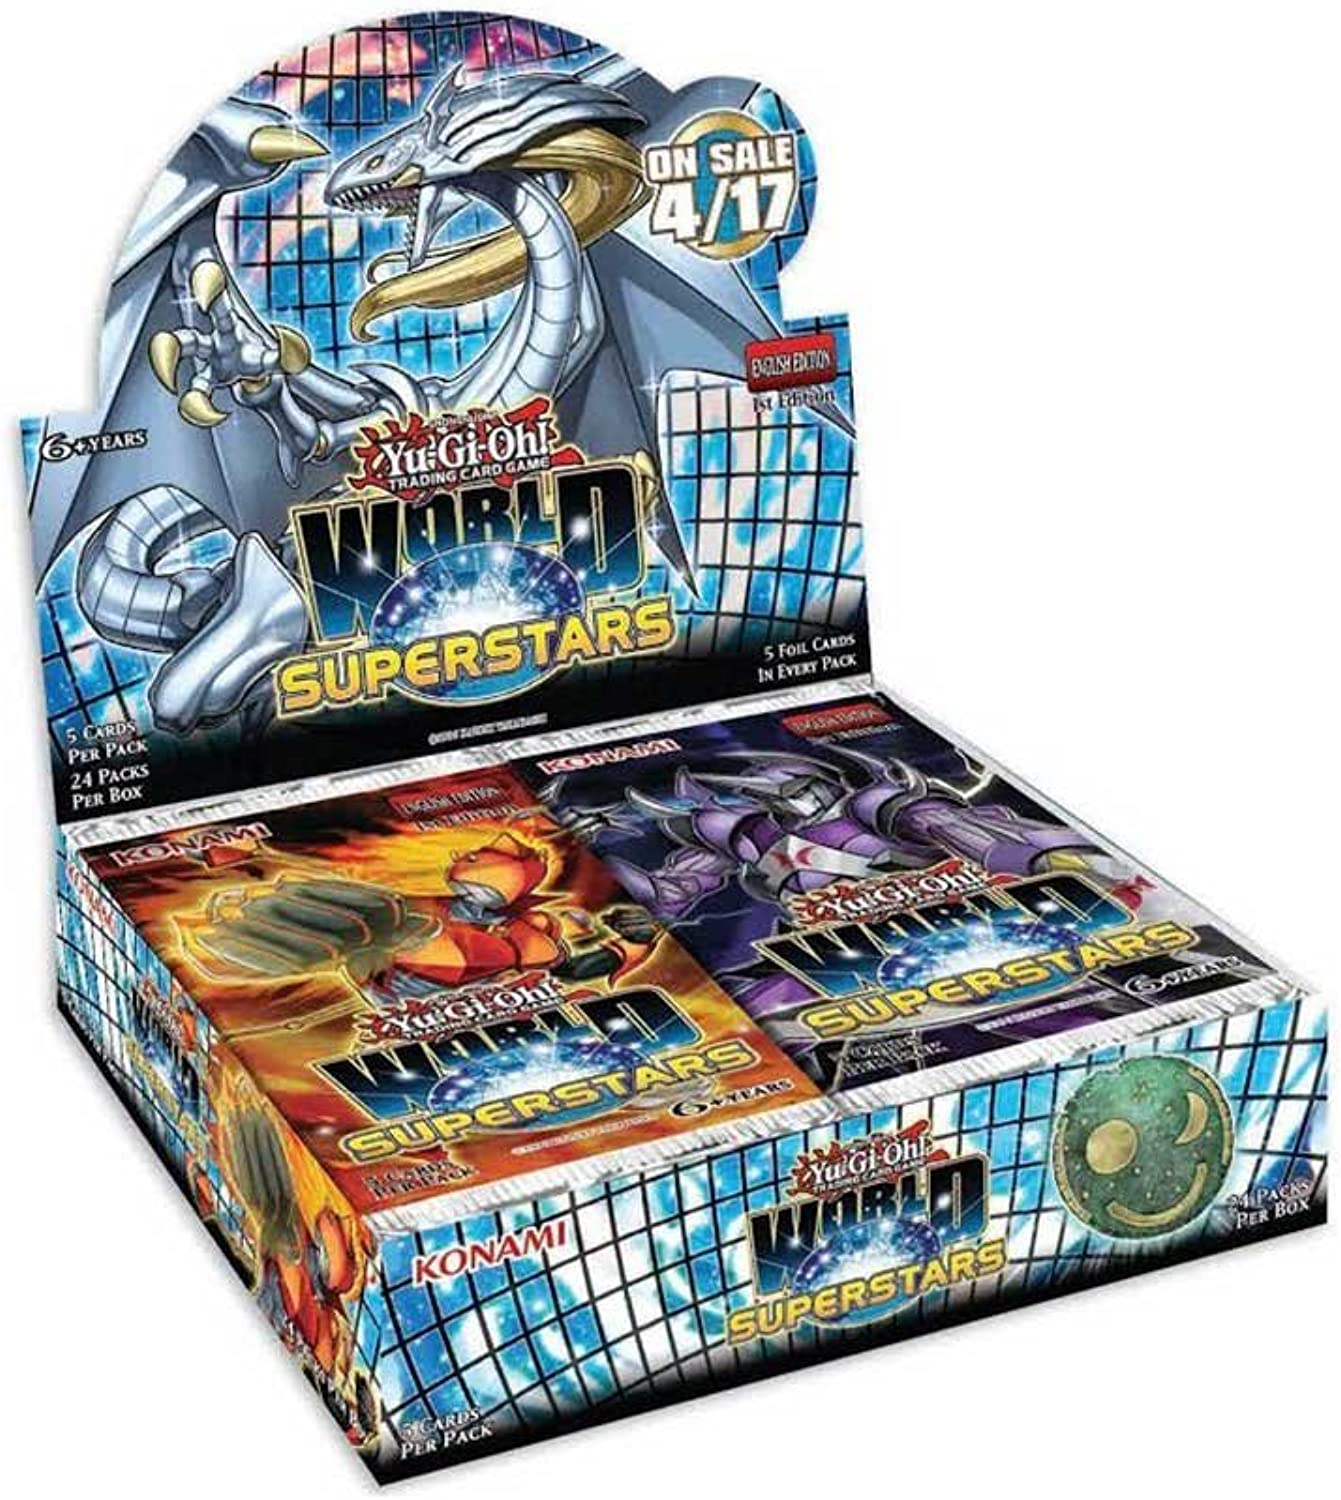 YUGIOH  WORLD SUPERSTARS ENGLISH EDITION 1ST EDITION 5CARDS PER PACK 24 PACKS PER BOX